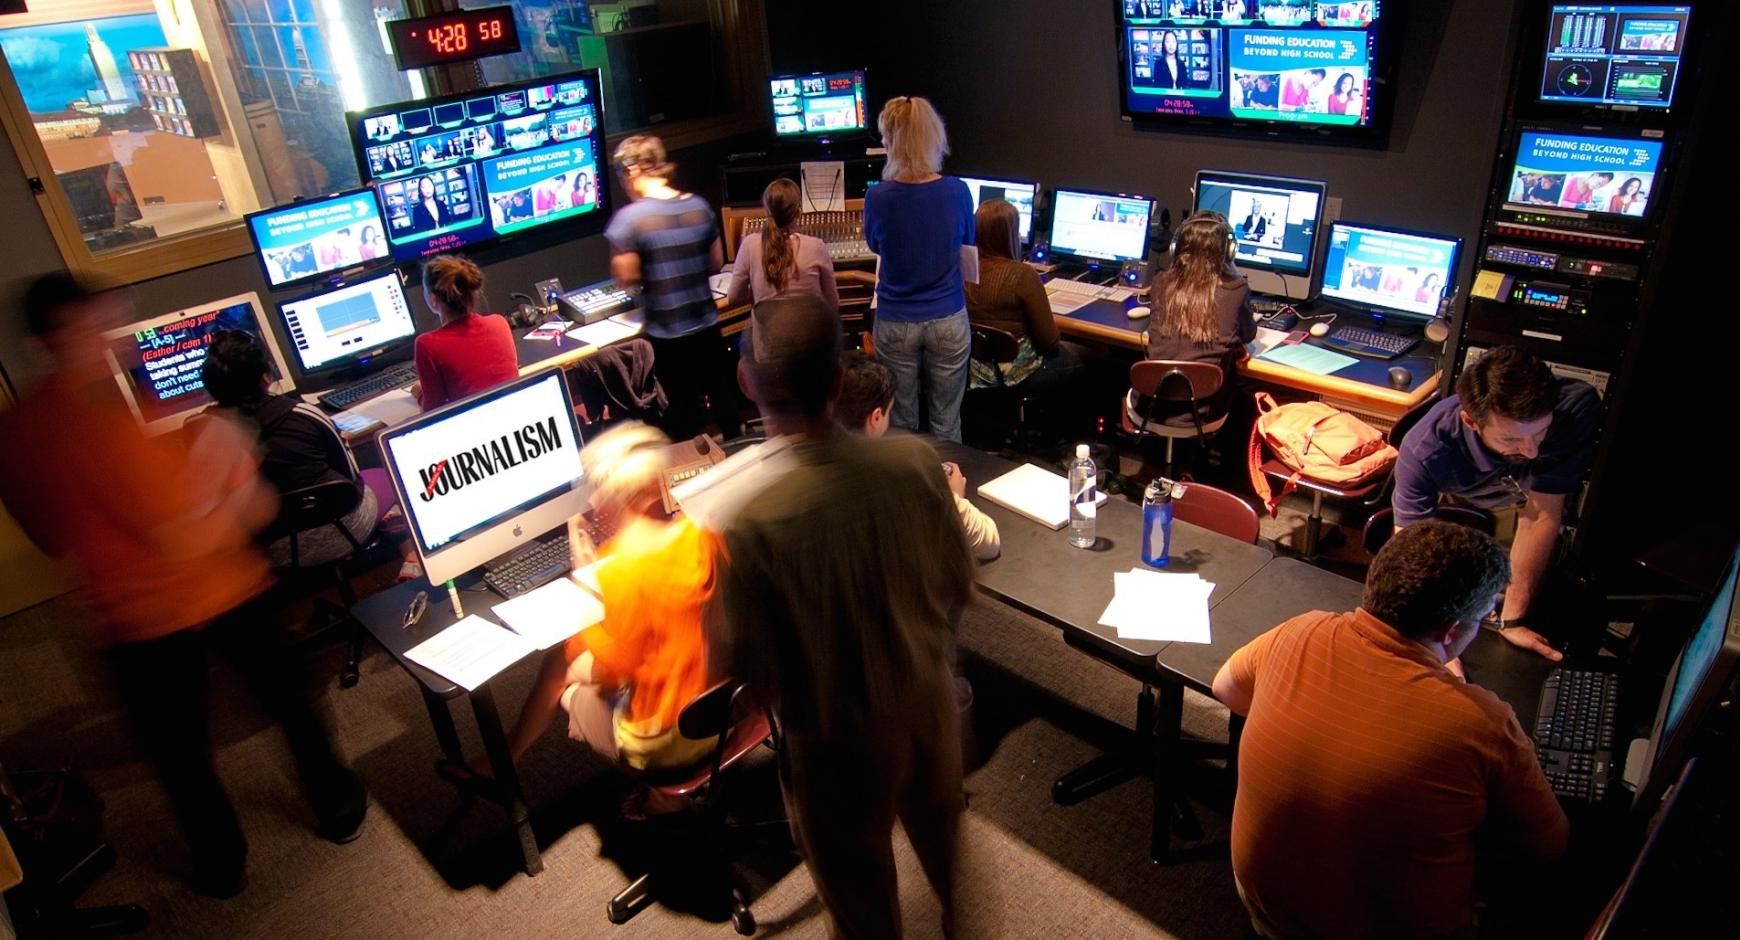 Behind the scenes of Texas Newswatch.